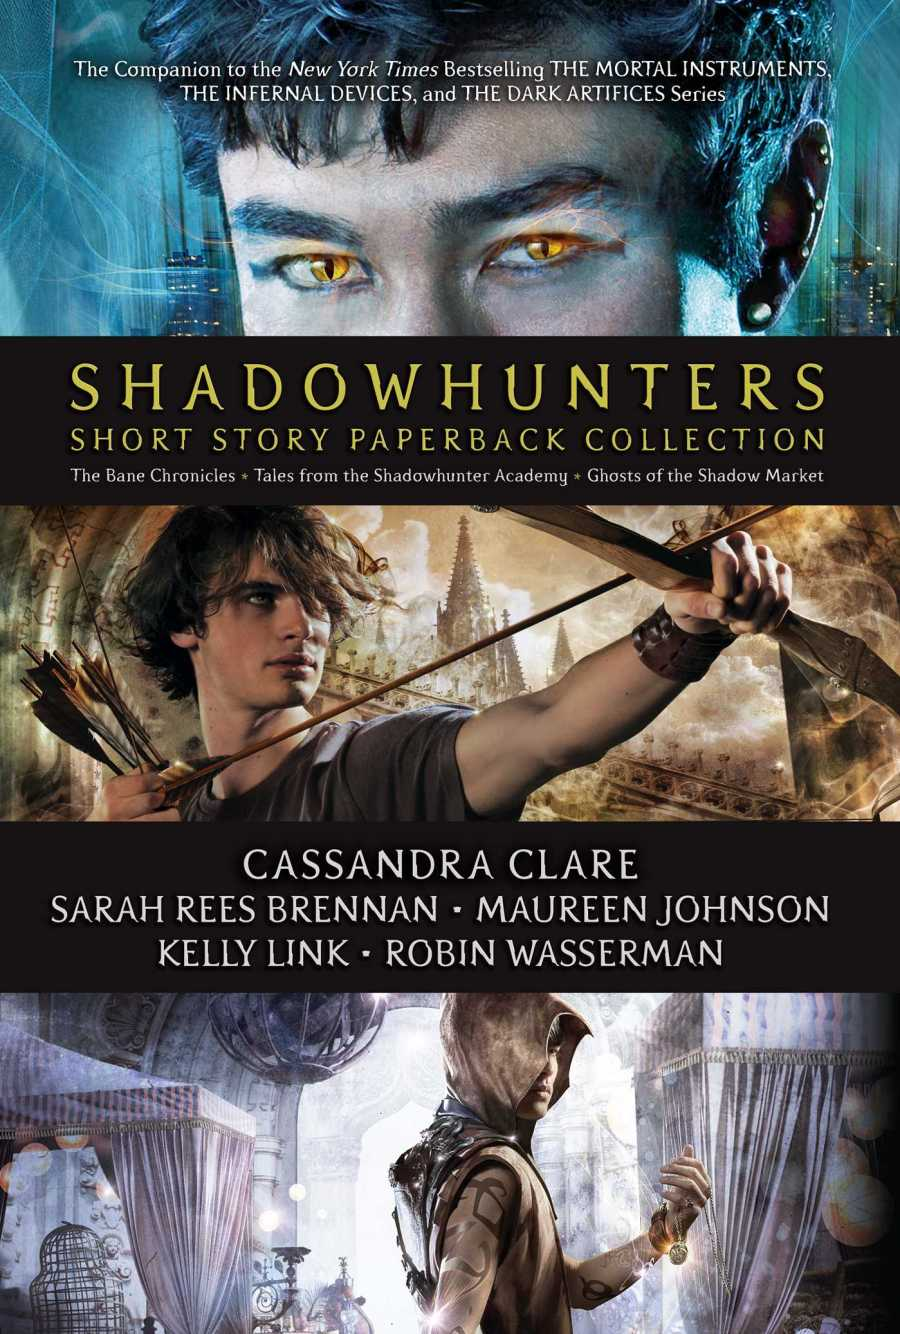 Shadowhunters Short Story Paperback Collection: The Bane Chronicles; Tales from the Shadowhunter Academy; Ghosts of the Shadow Market